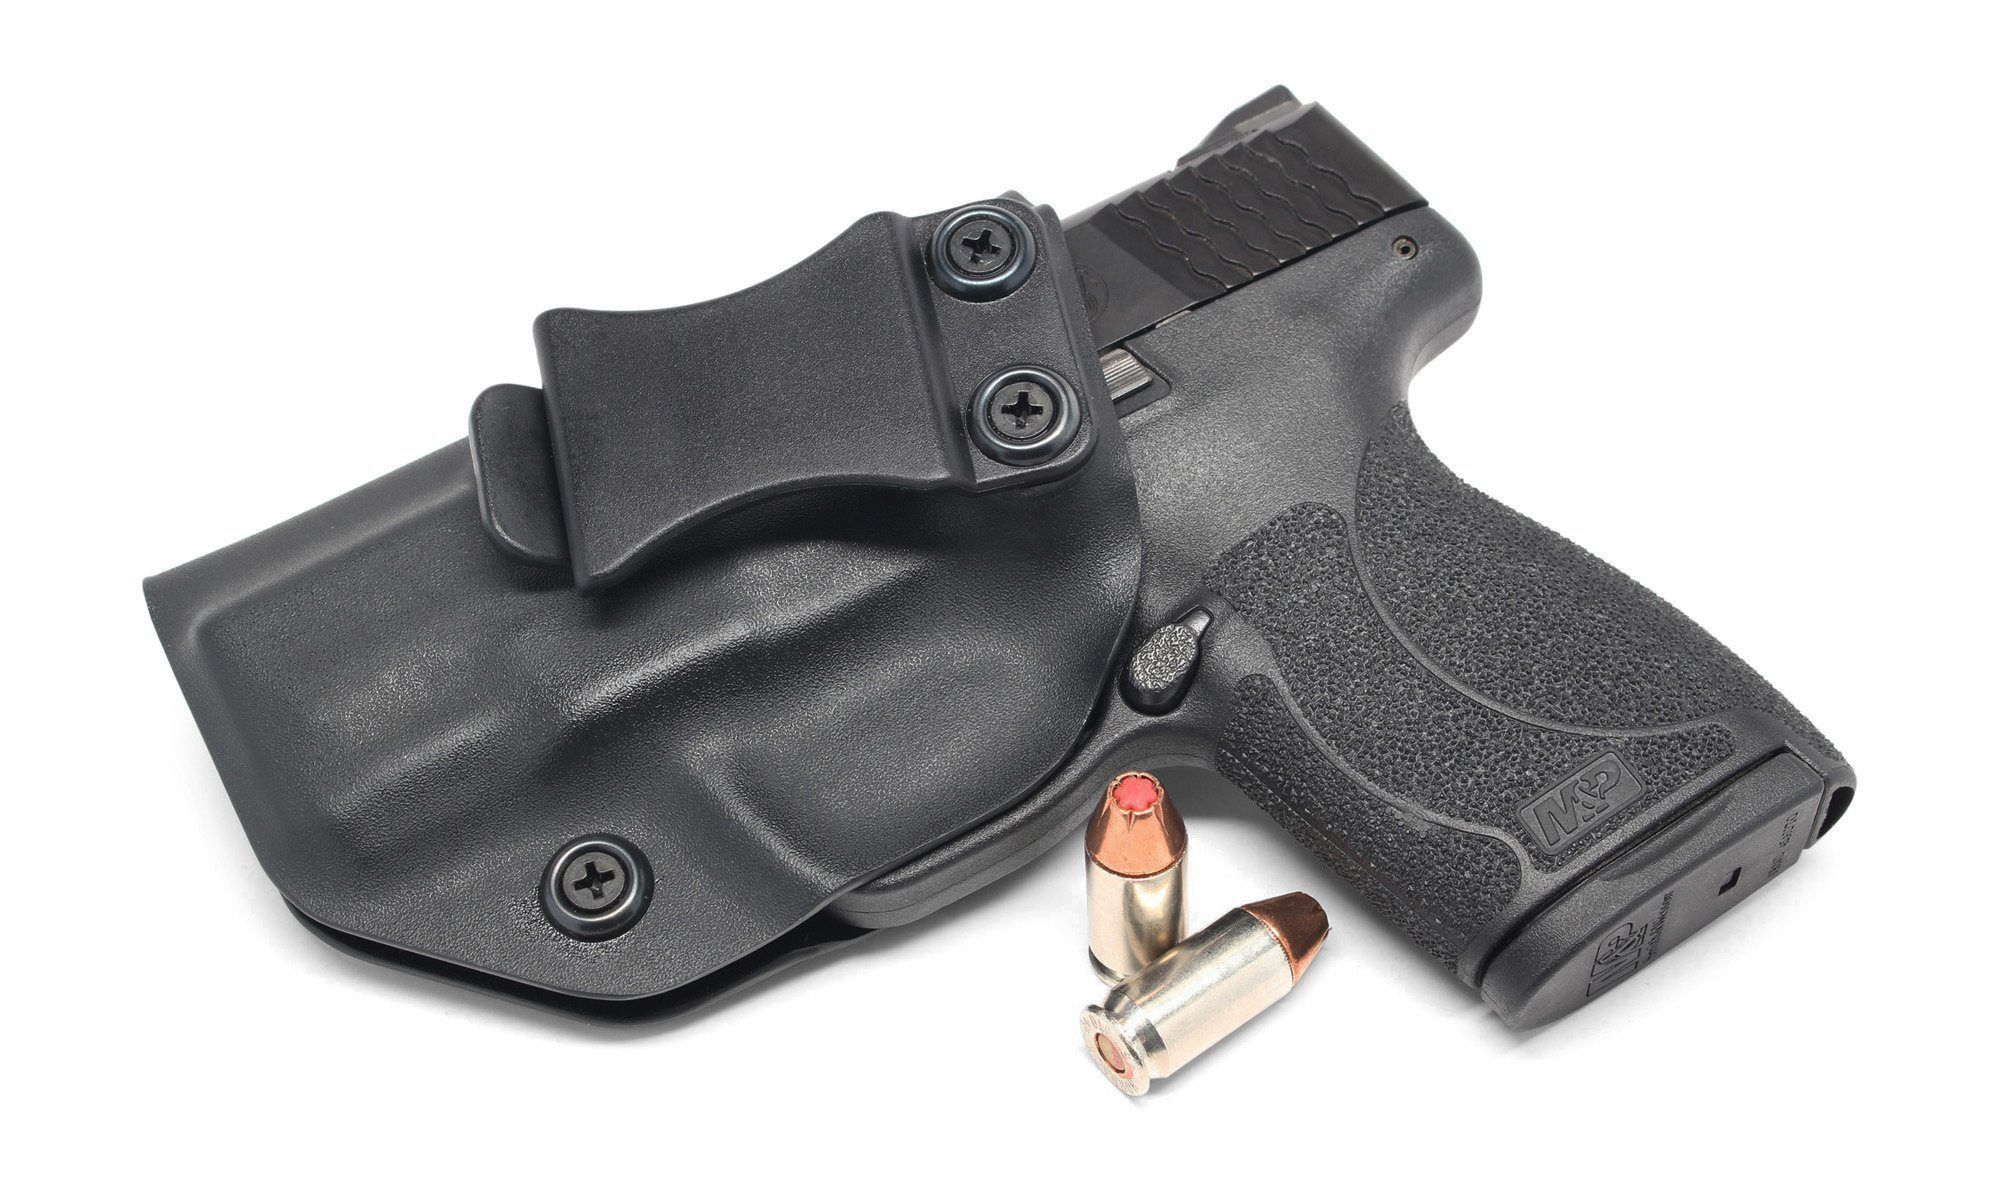 Smith & Wesson M&P Shield 45 ACP IWB KYDEX HolsterSave those thumbs & bucks w/ free shipping on this magloader I purchased mine http://www.amazon.com/shops/raeind No more leaving the last round out because it is too hard to get in. And you will load them faster and easier, to maximize your shooting enjoyment. loader does it all easily, painlessly, and perfectly reliably